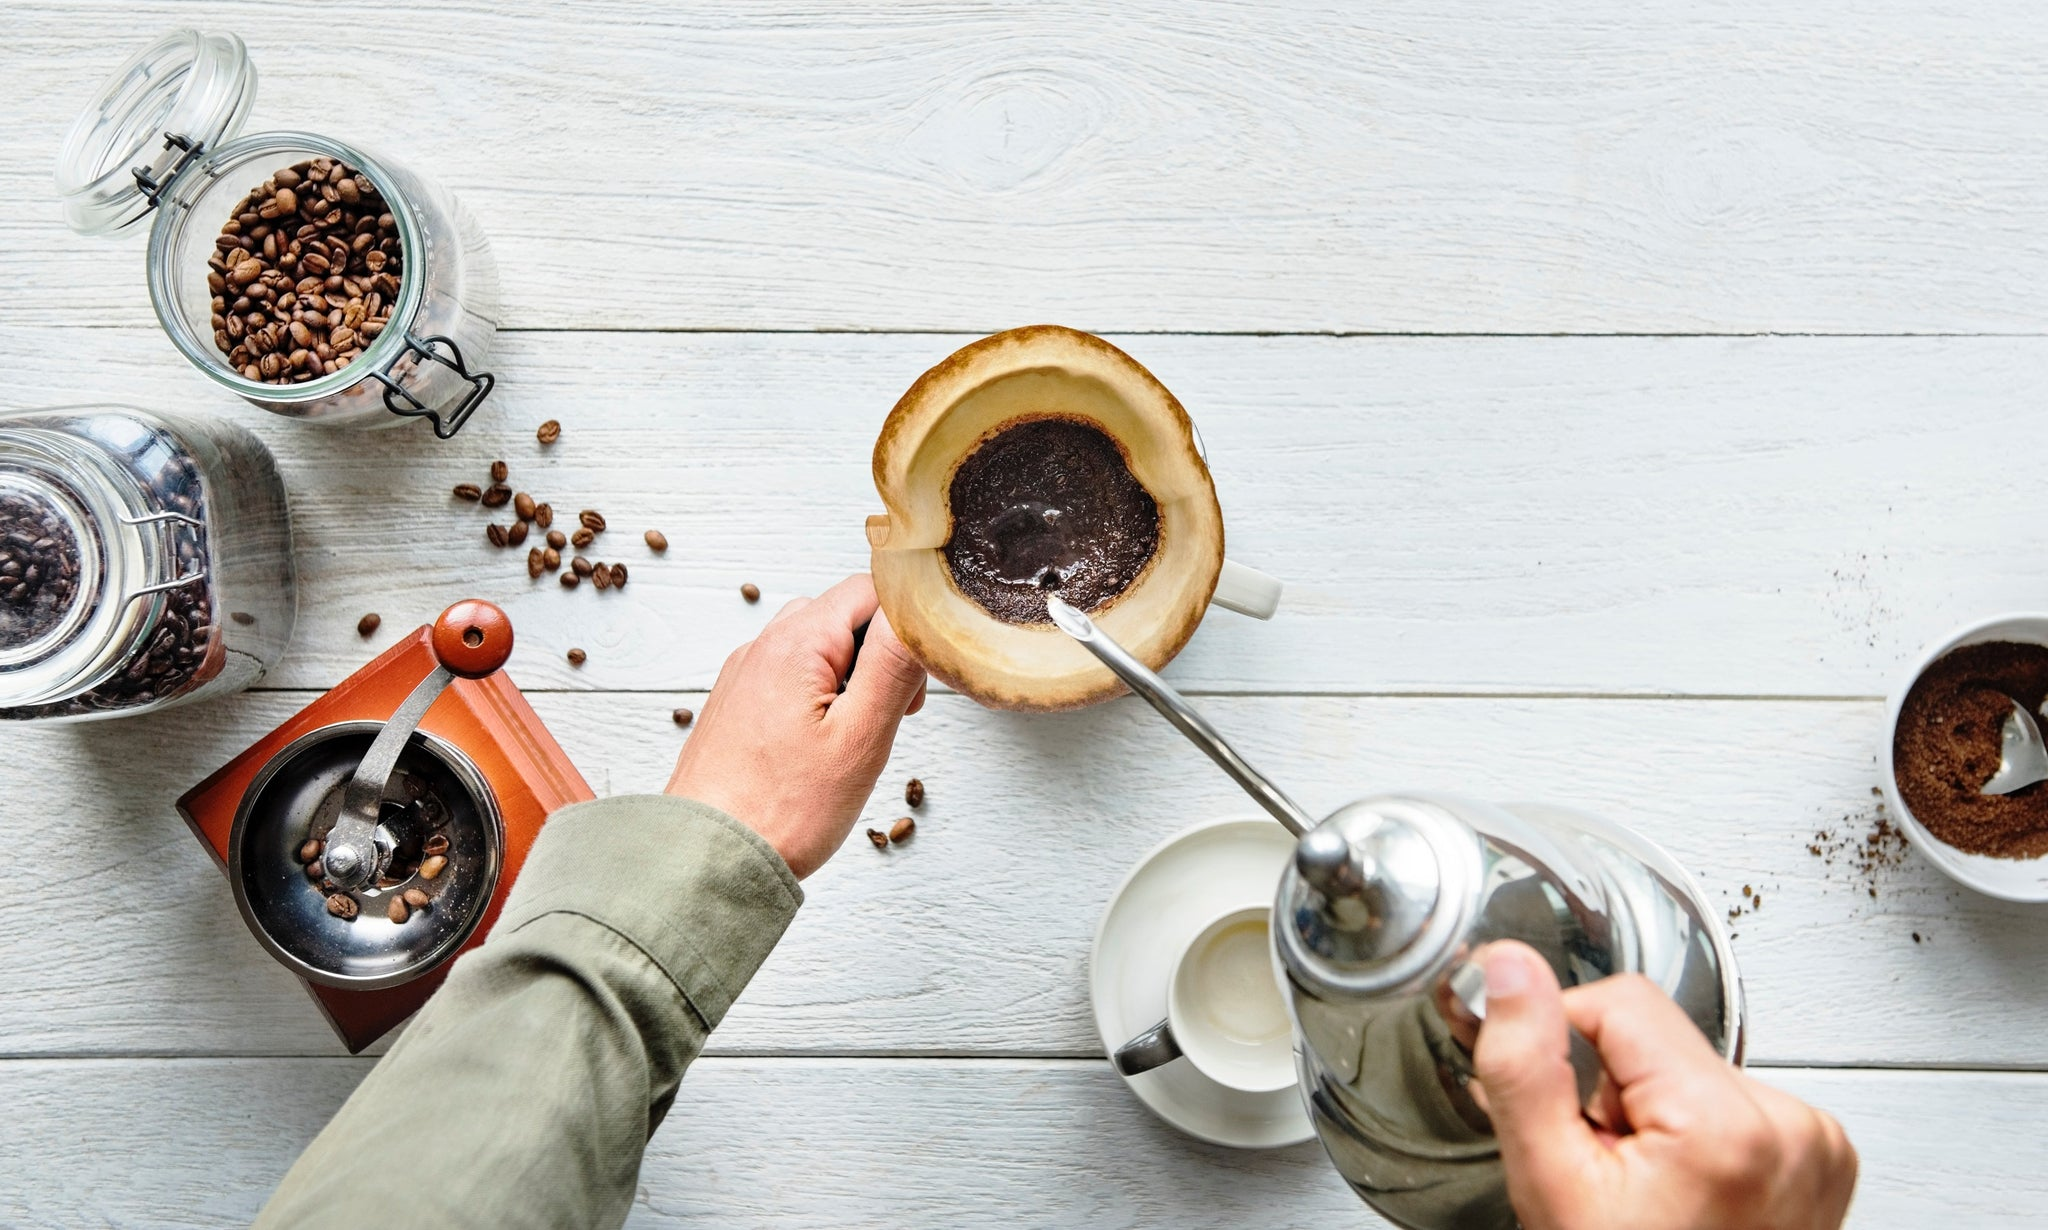 Whole Bean Vs. Ground Coffee - What's the difference?